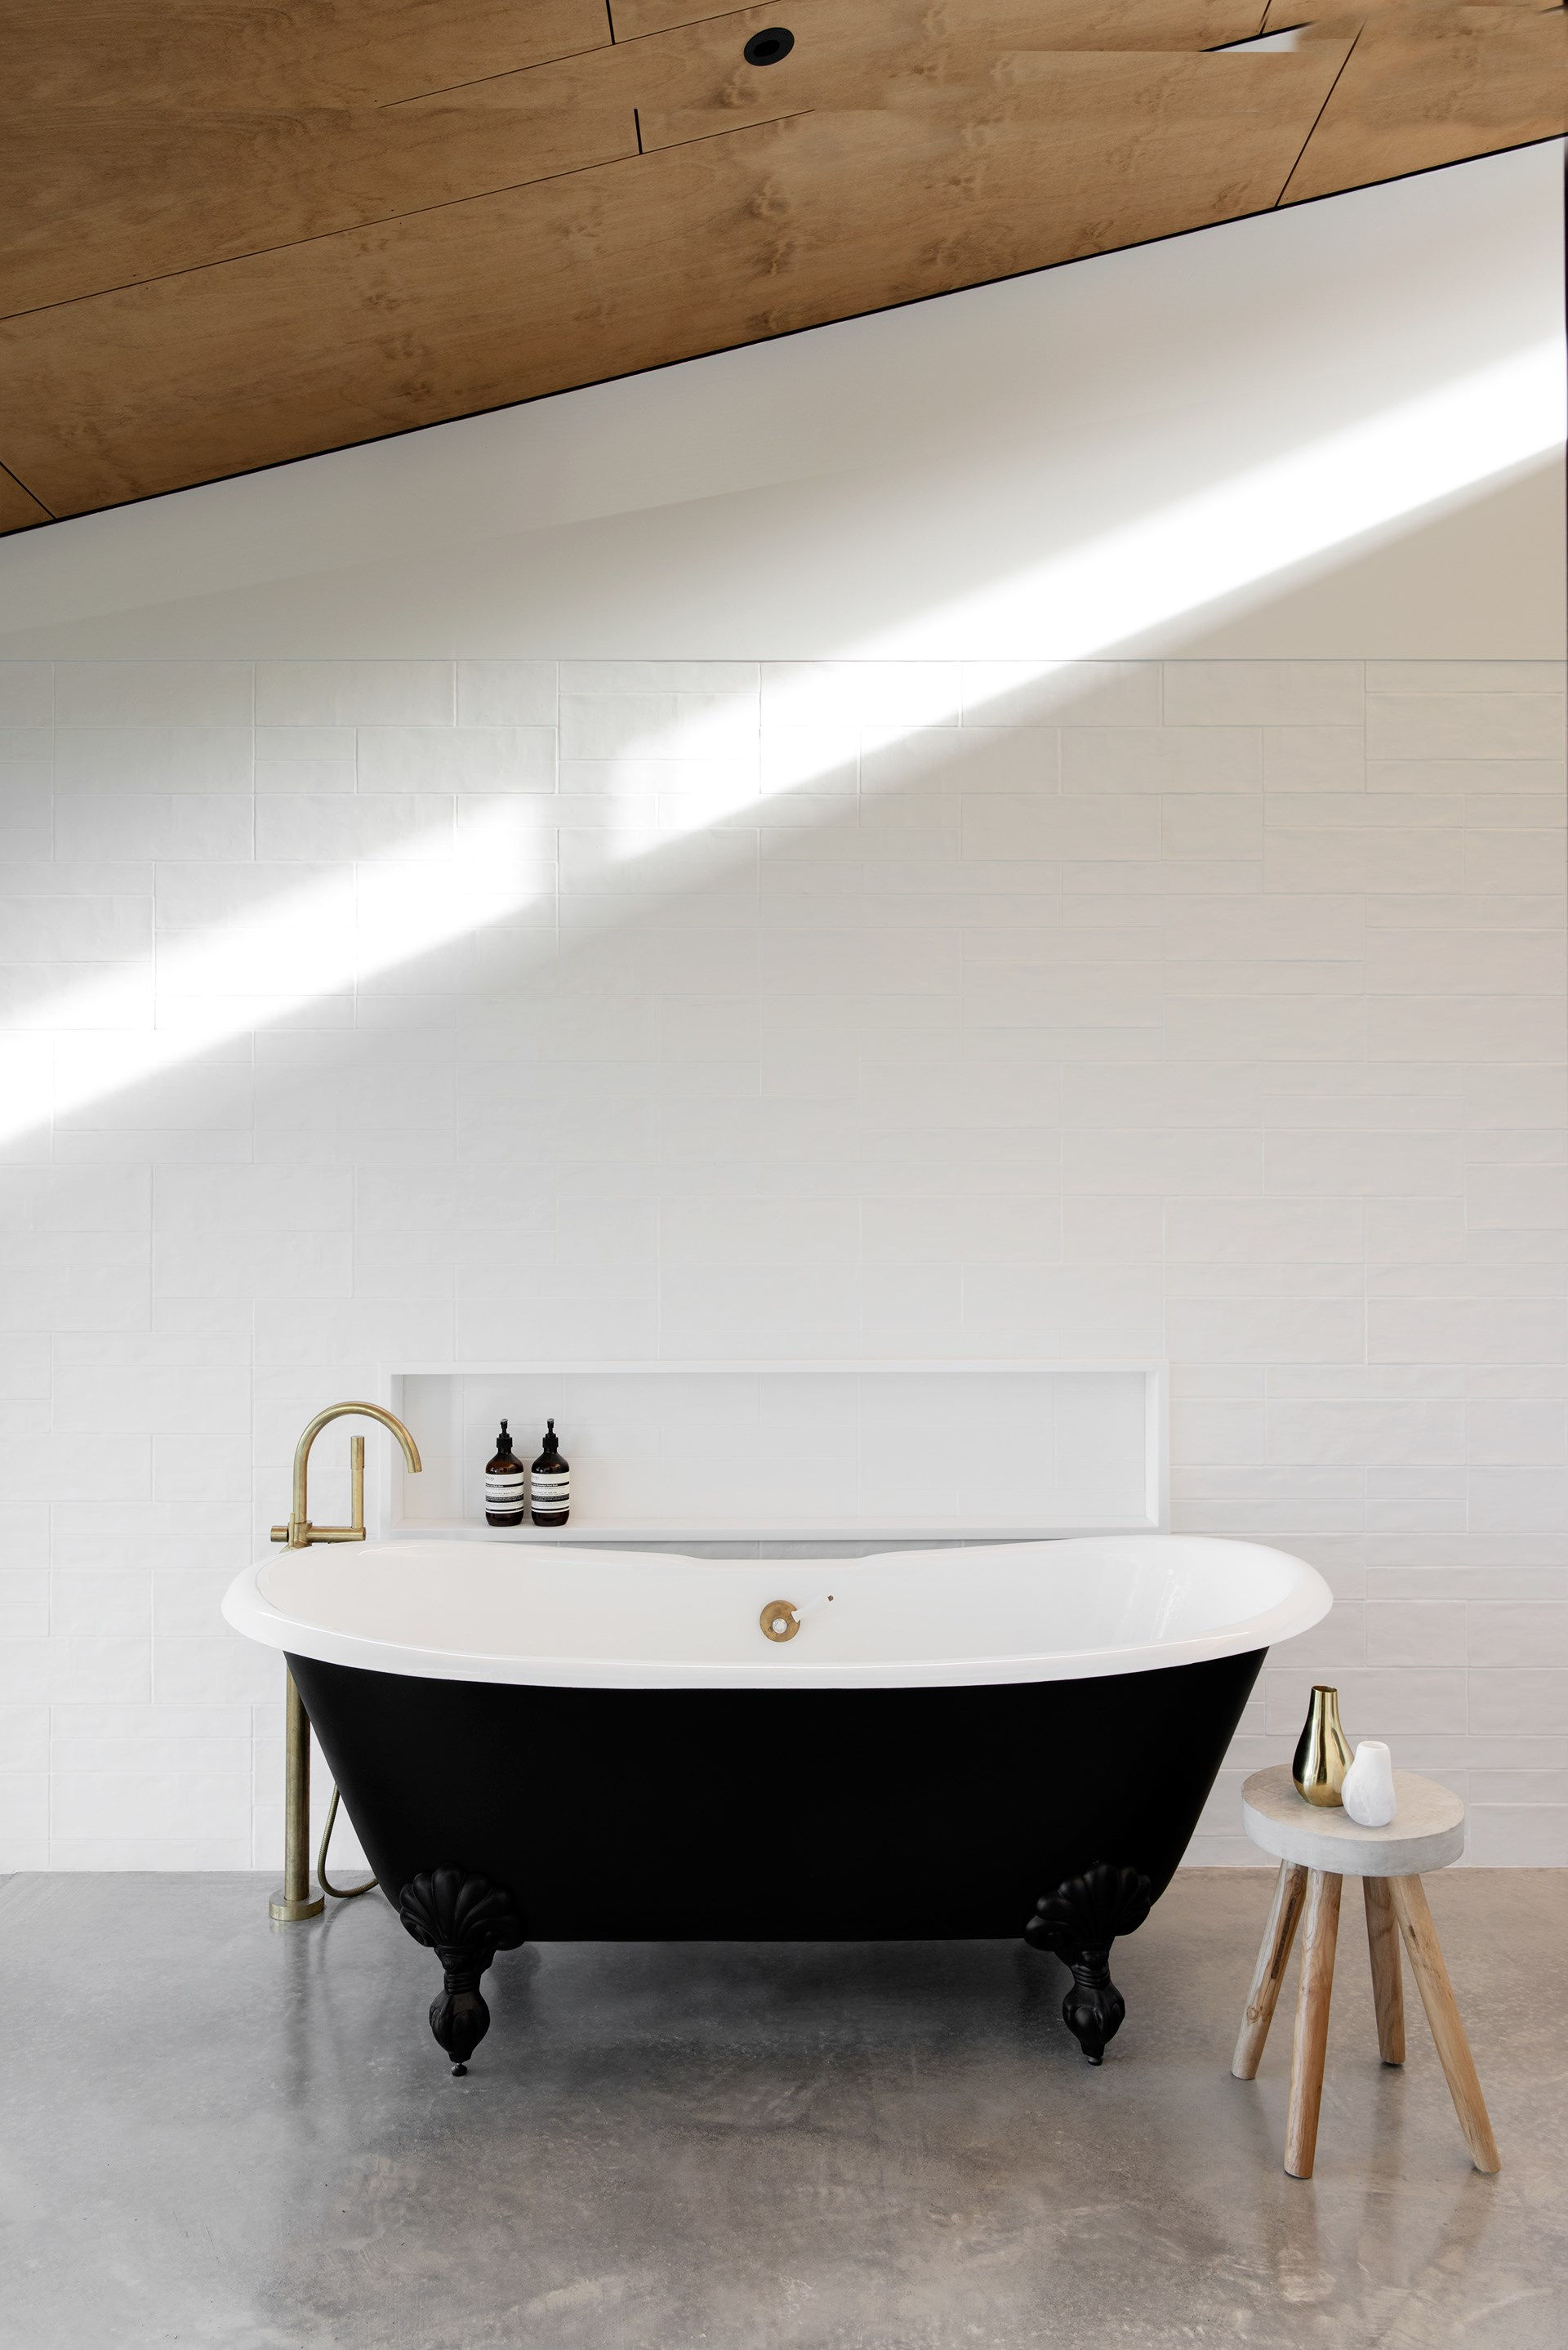 """Nothing says """"timeless"""" more than a vintage clawfoot bath. The owners of this [breathtaking country home](http://www.homestolove.com.au/a-home-up-high-on-the-south-coast-of-nsw-4569) lovingly restored this bargain buy with a luxurious result. *Photo: Nicholas Watt / Belle*"""